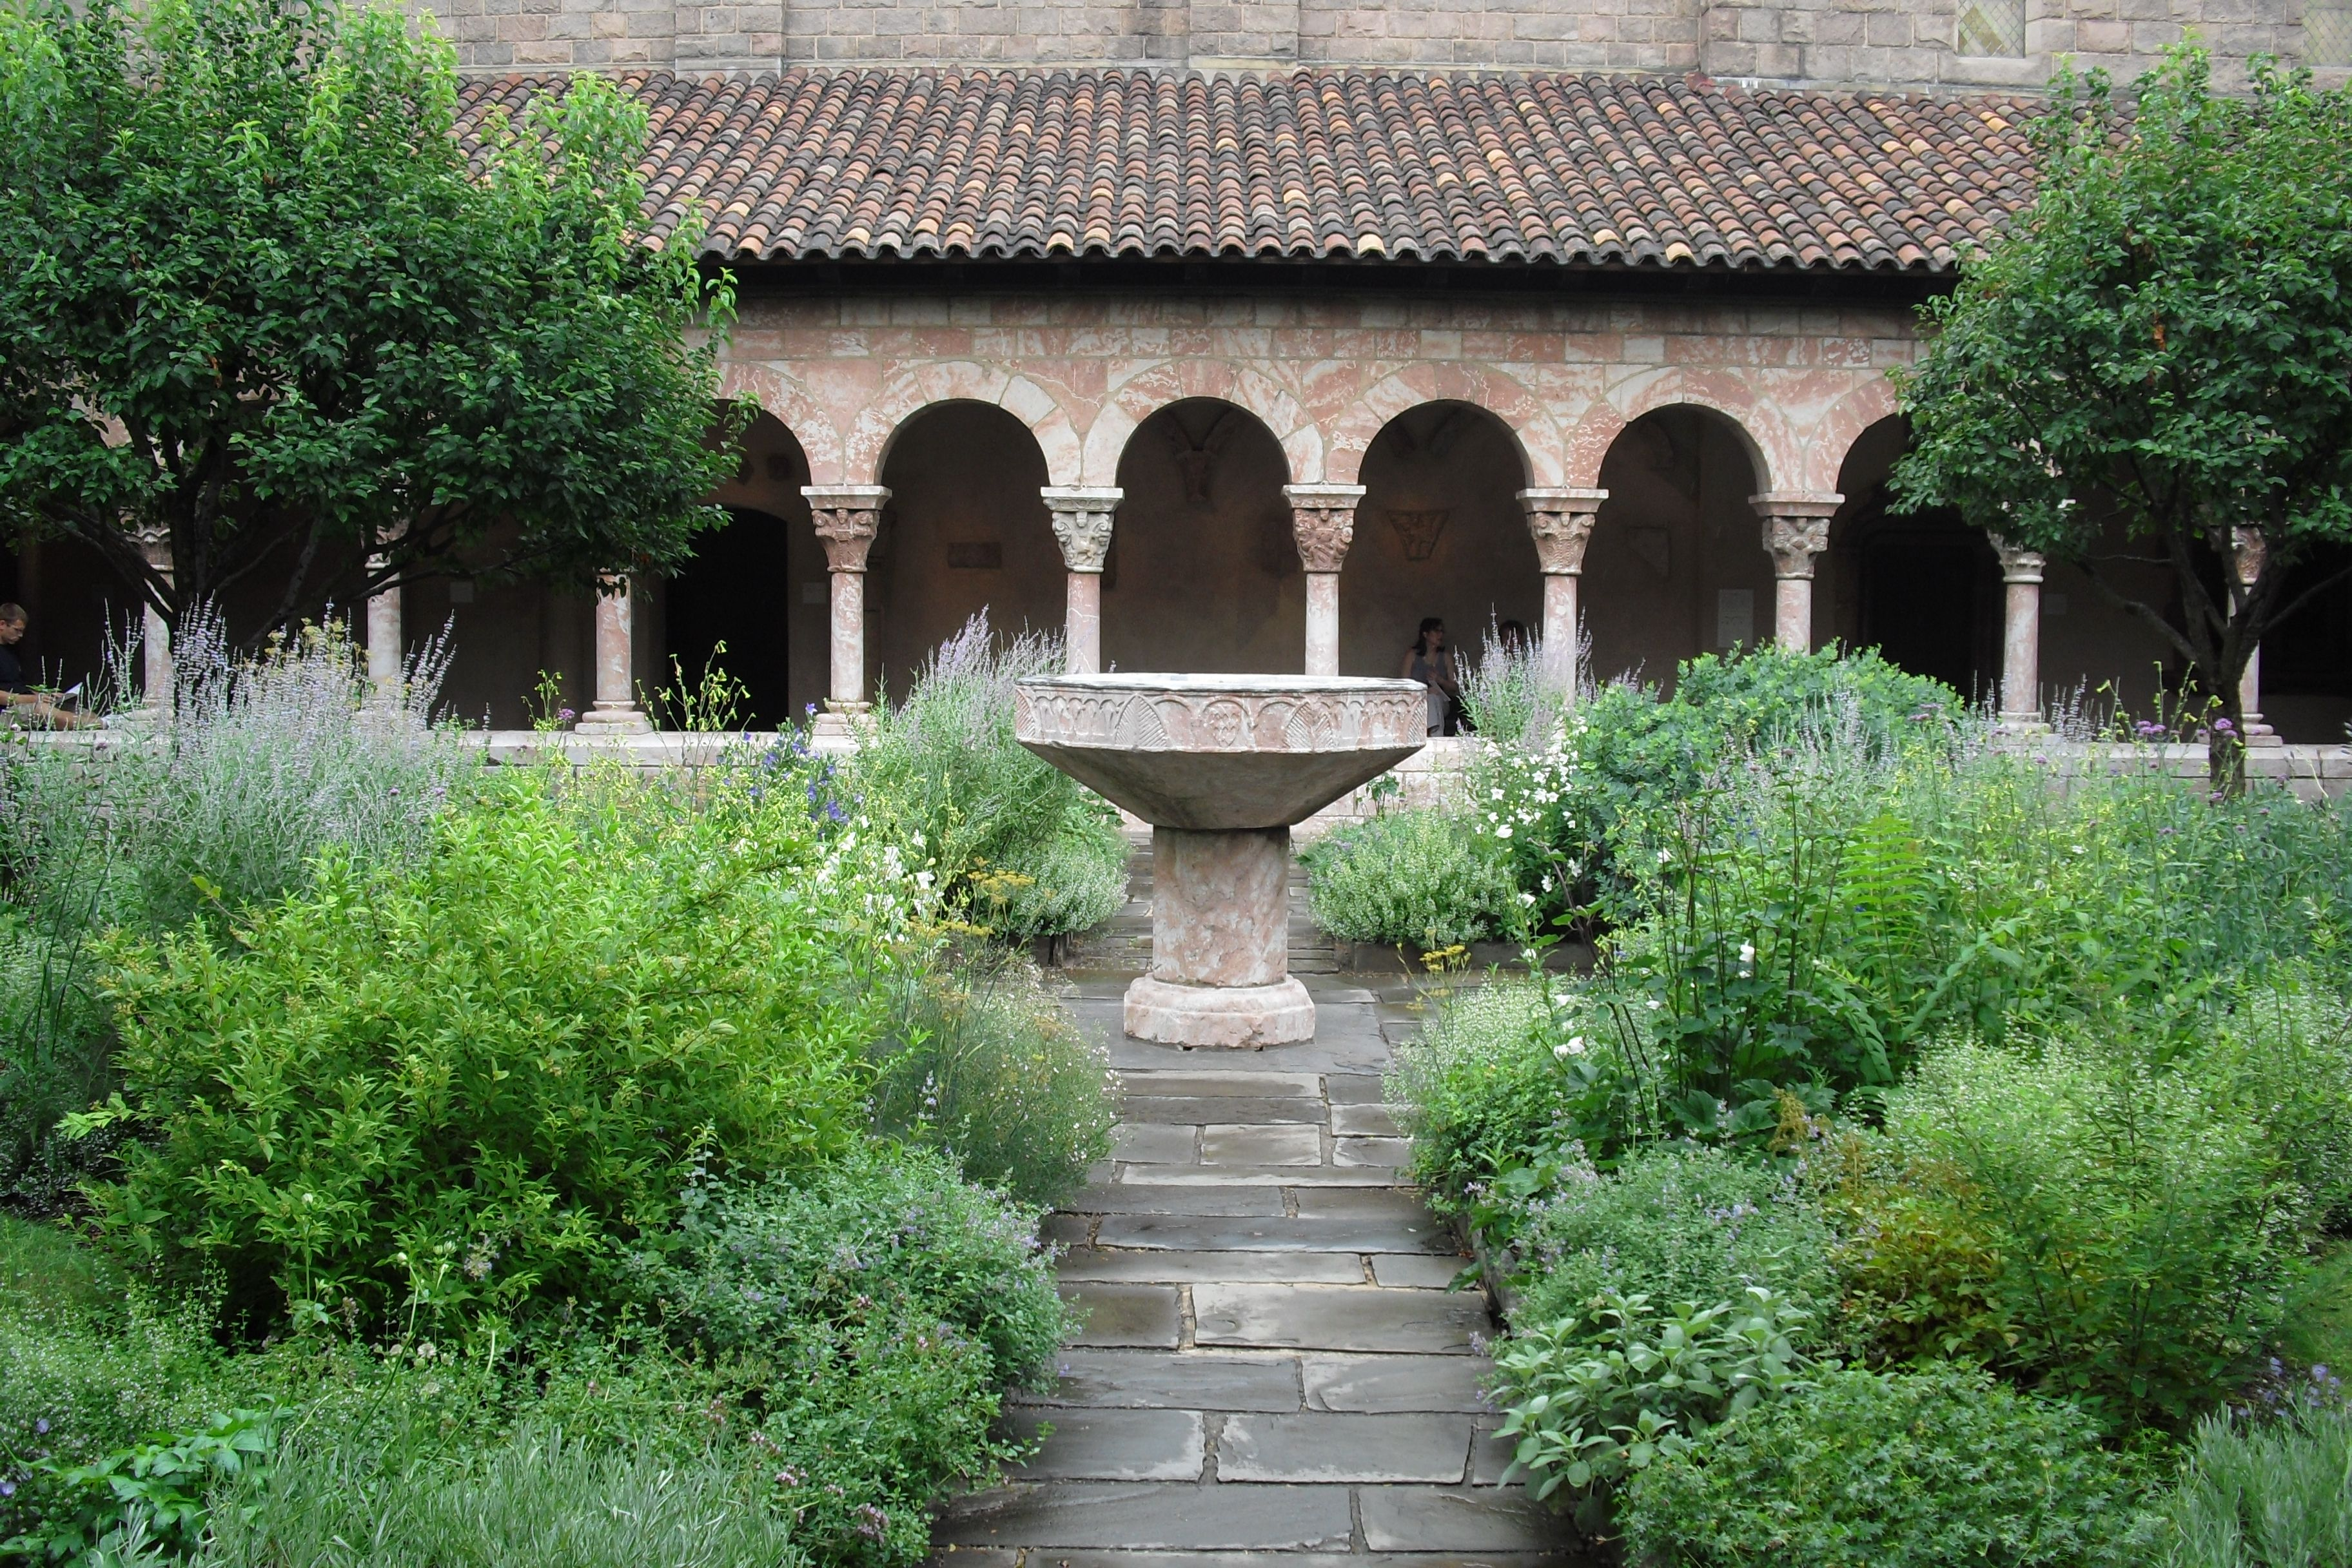 2a305cd7ce6fd949390f3f9218b3e077 - Cloisters Museum And Gardens New York